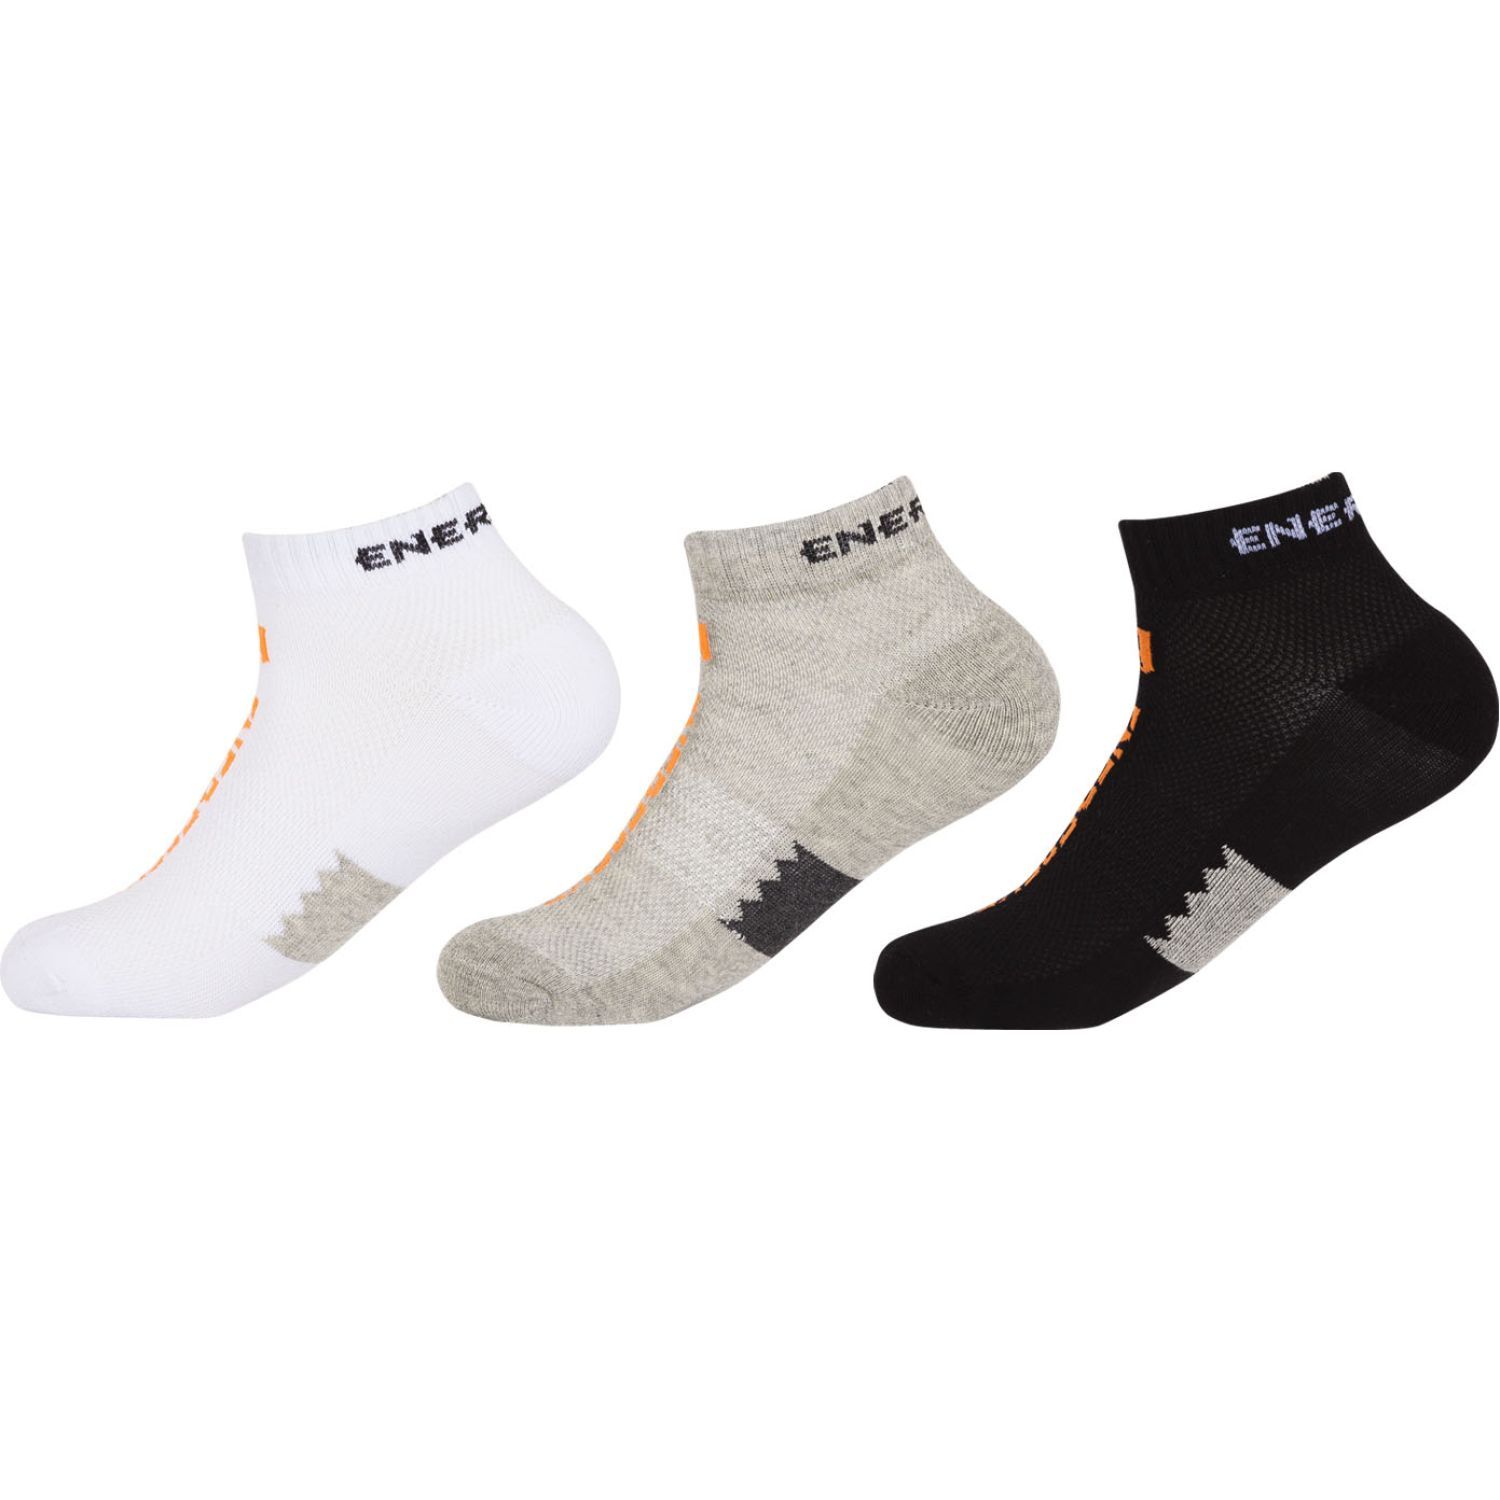 ENERSOCKS Pack 3 Calcetines  Ped BLANCO/NEGRO/GRIS Calcetines